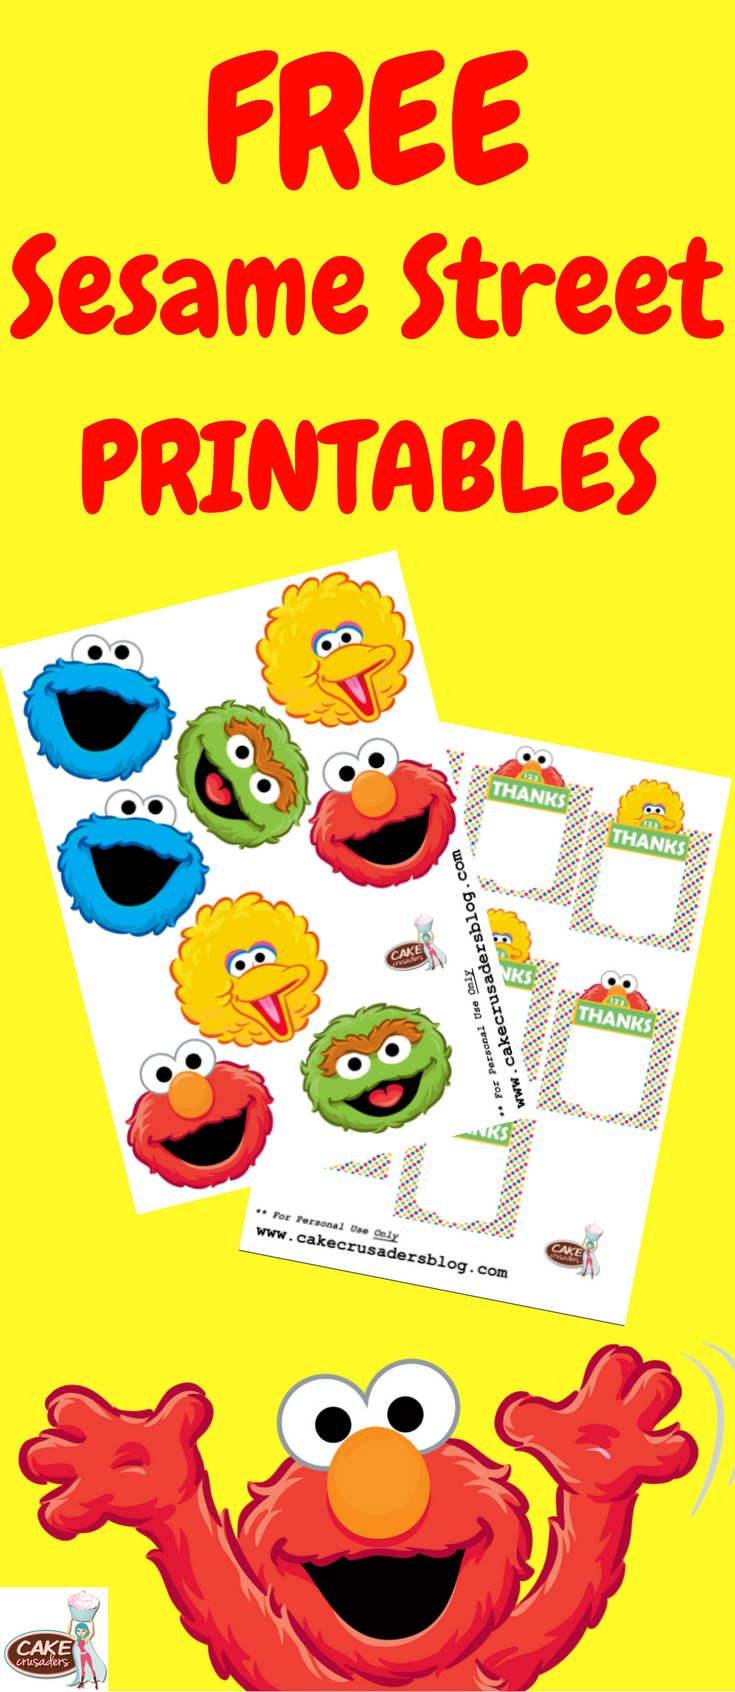 How To Make Sesame Street Party Favour Box Decorations | Sesame - Free Sesame Street Printables